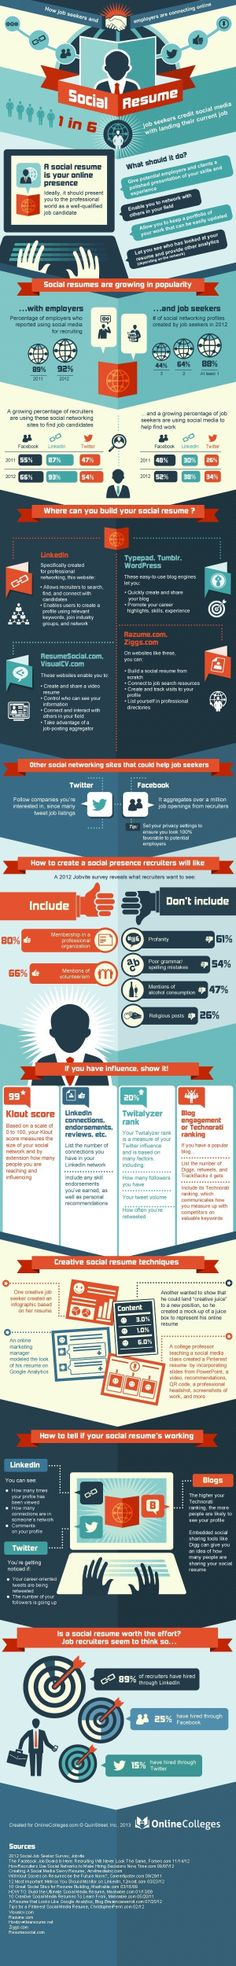 star-wars-meyers-briggs Job Seekers Pinterest - resume social media